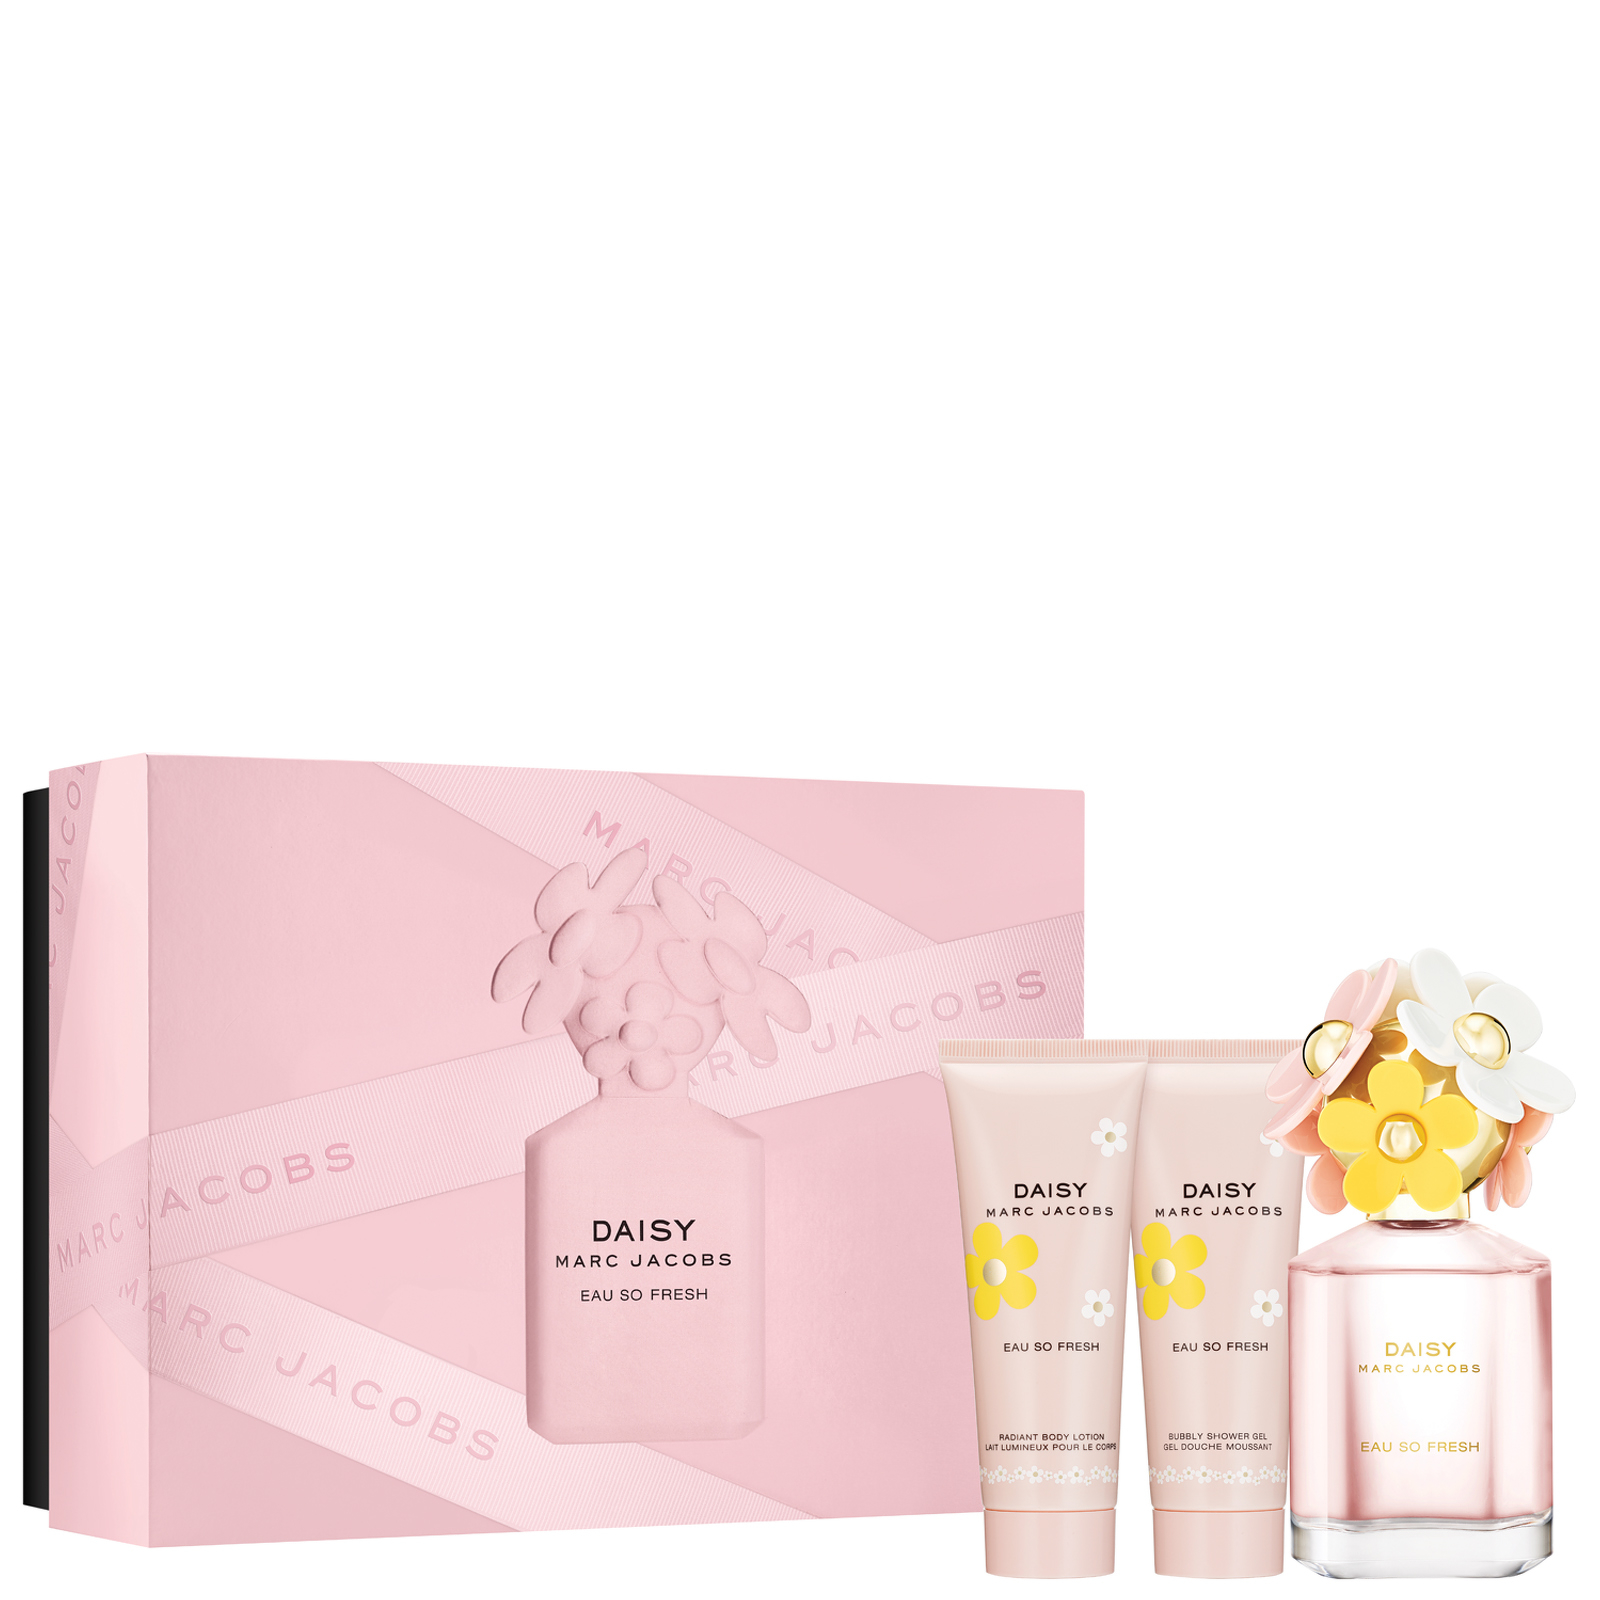 Marc Jacobs Daisy Eau So Fresh Eau de Toilette Spray 75ml Gift Set